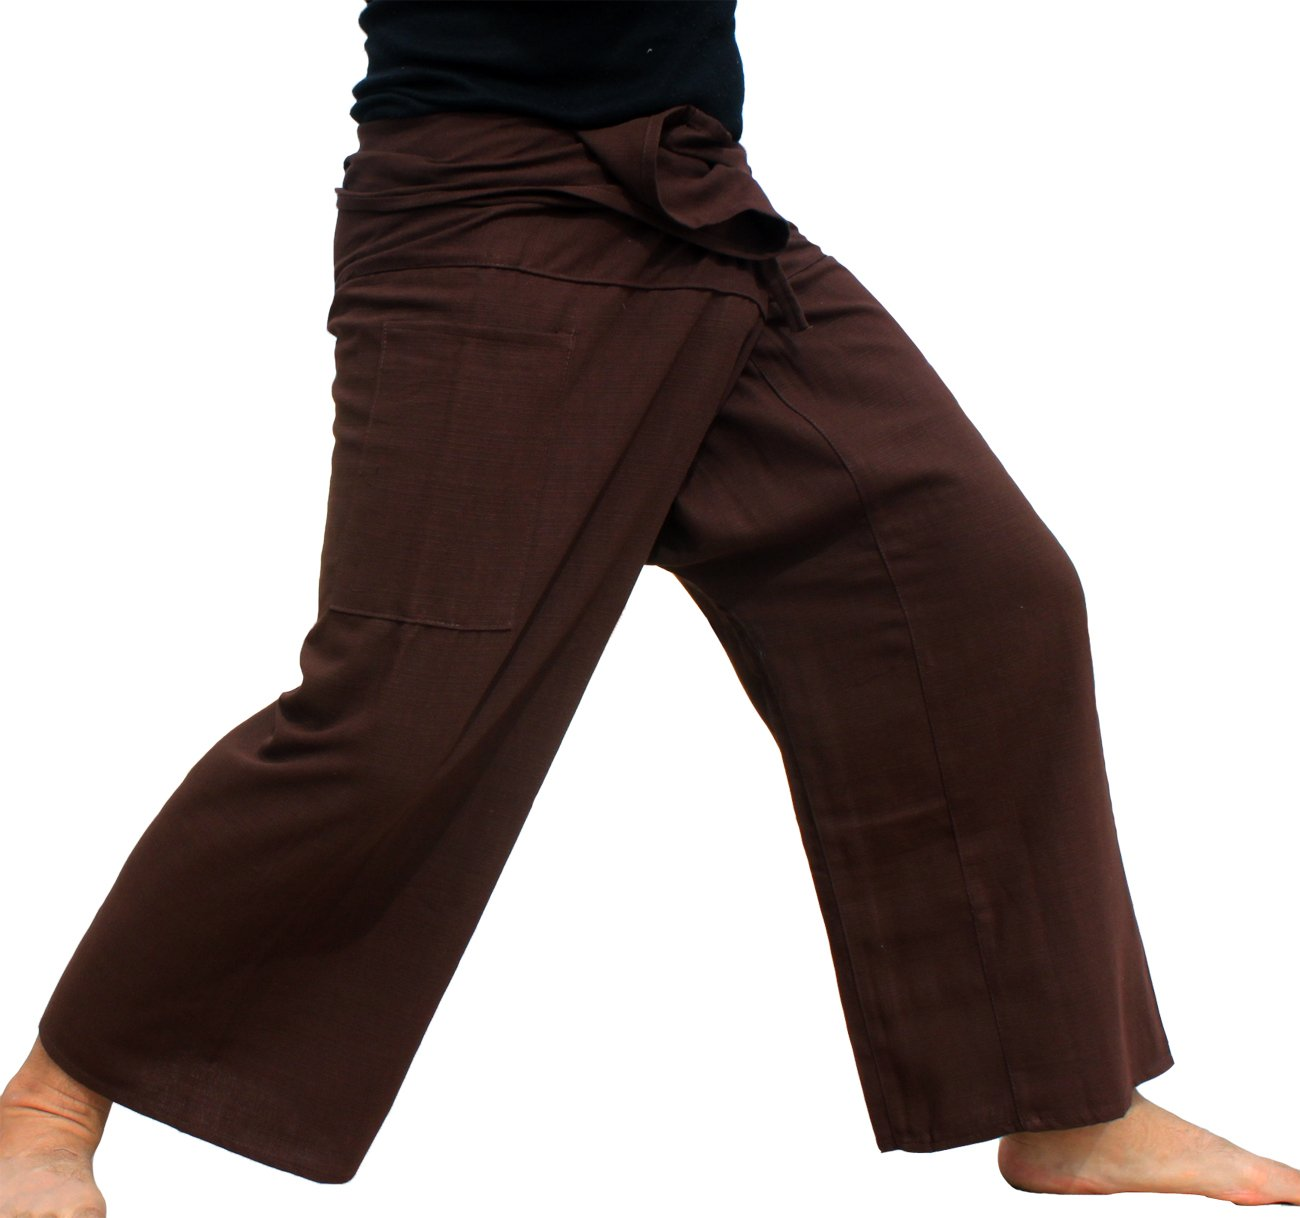 Raan Pah Muang Brand Plain Thick Line Cotton Thai Fisherman Wrap Tall Length Pants, X-Large, Bistre Brown by Raan Pah Muang